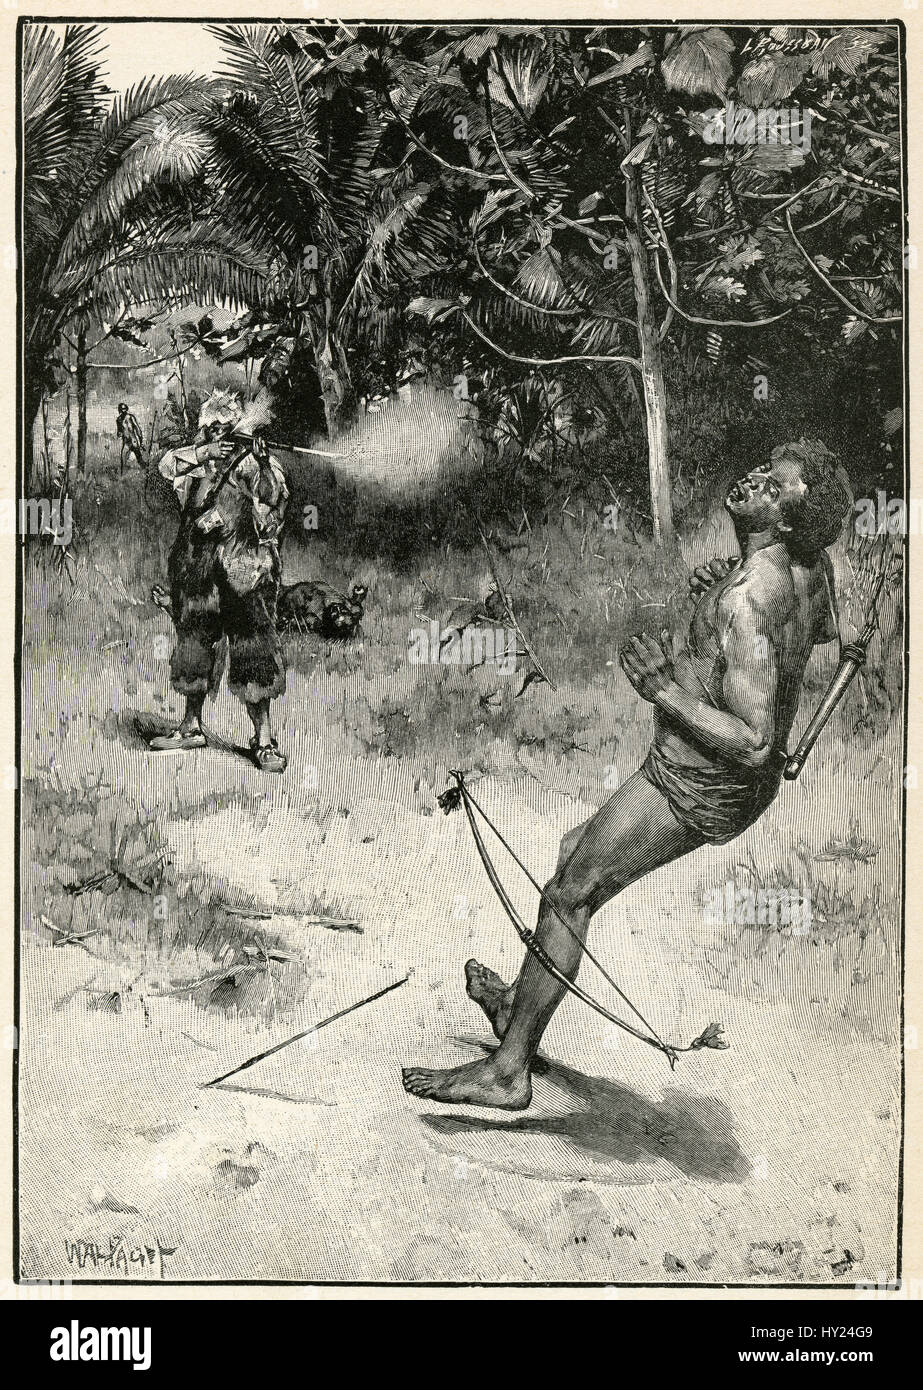 """1910s engraving from Robinson Crusoe by Daniel Defoe: """"I was then obliged to shoot."""" Illustrated by Walter Paget. Stock Photo"""